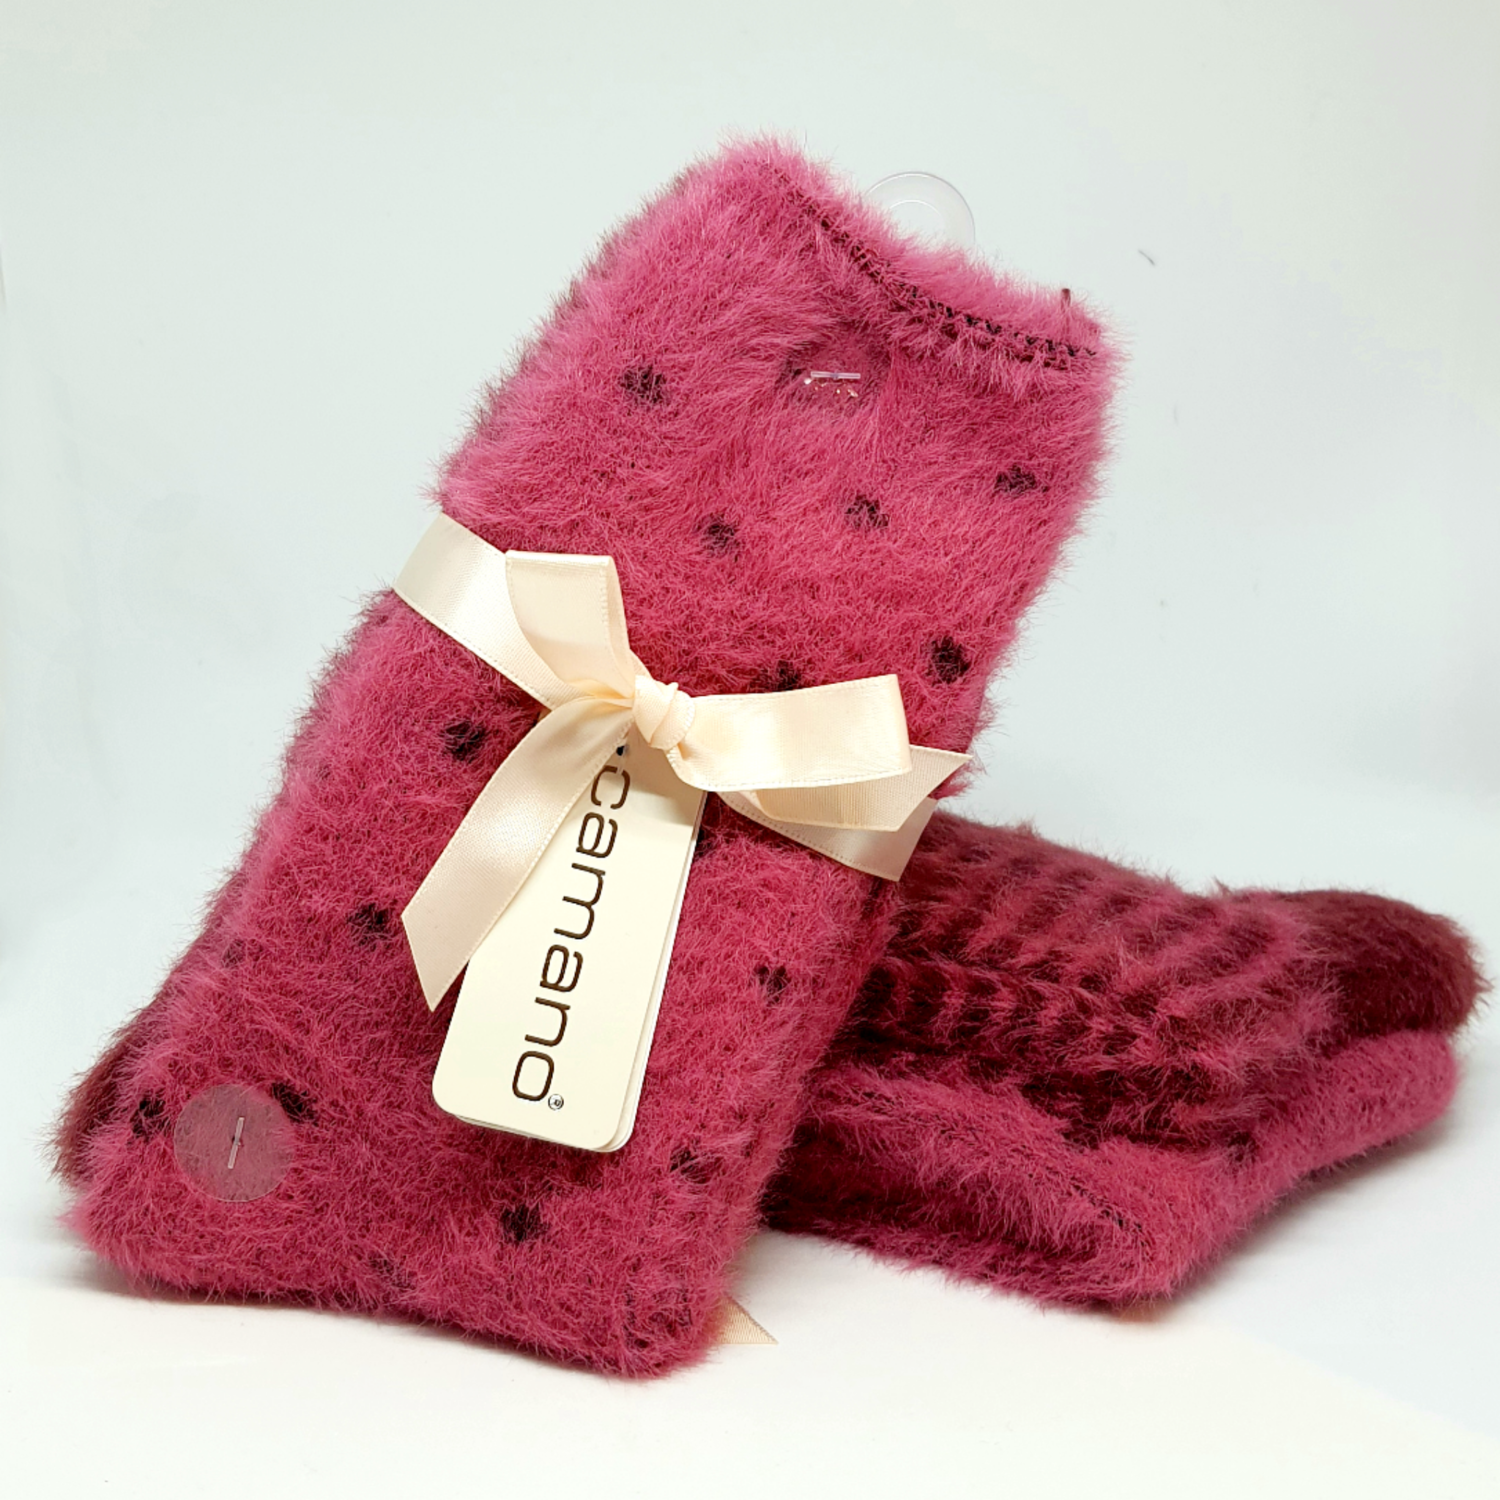 Fluffy socks Winter Berry (2 paar!)